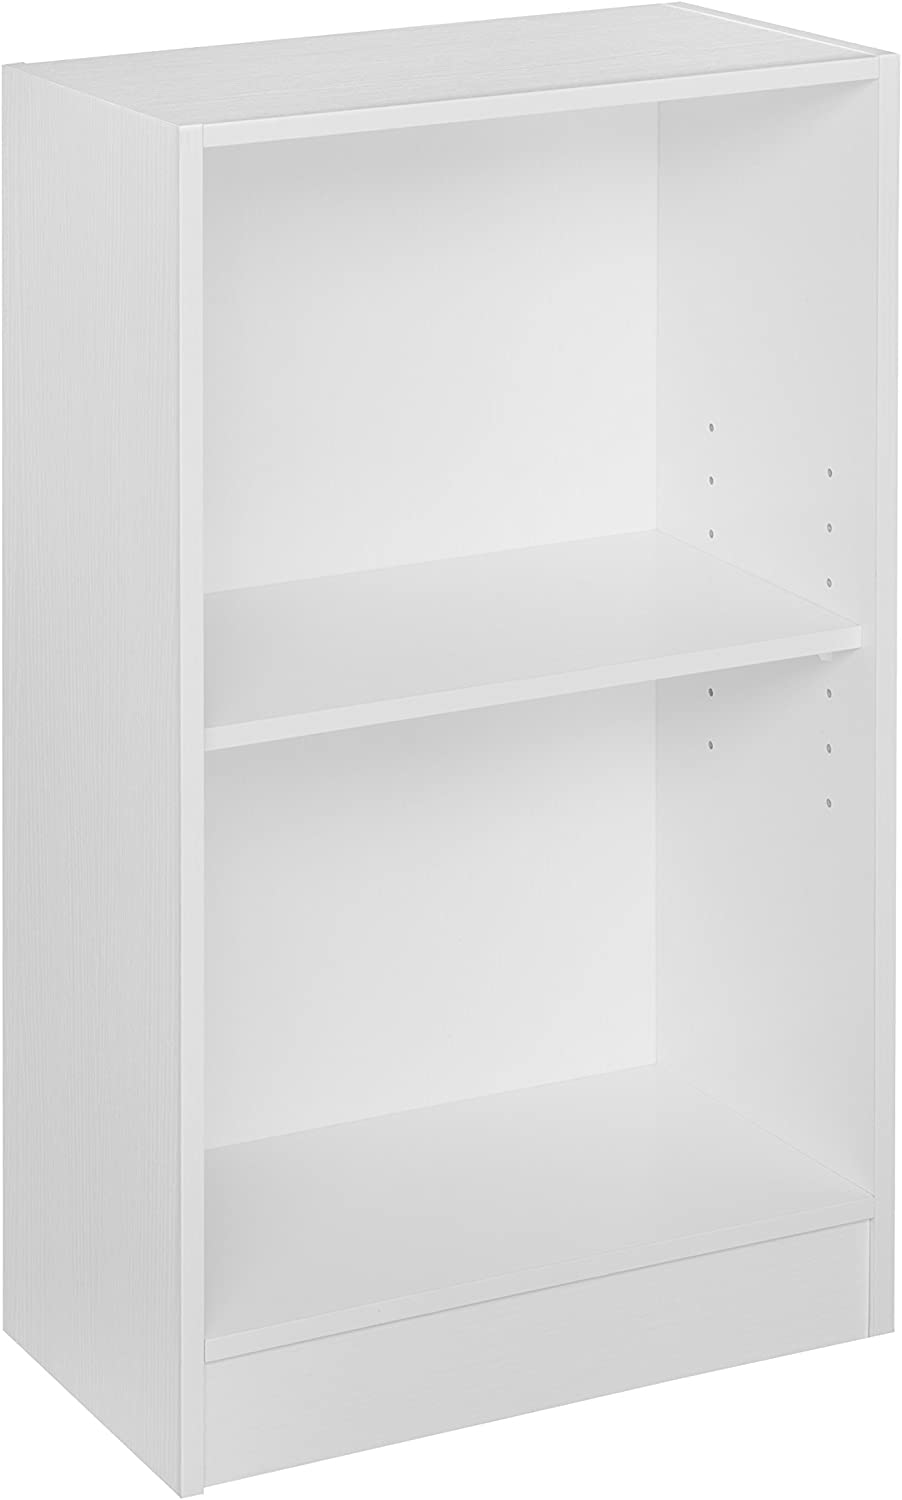 "Niche Mod Compact Bookcase with No- with No-Tools Assembly, 16""W x 29""H, White"